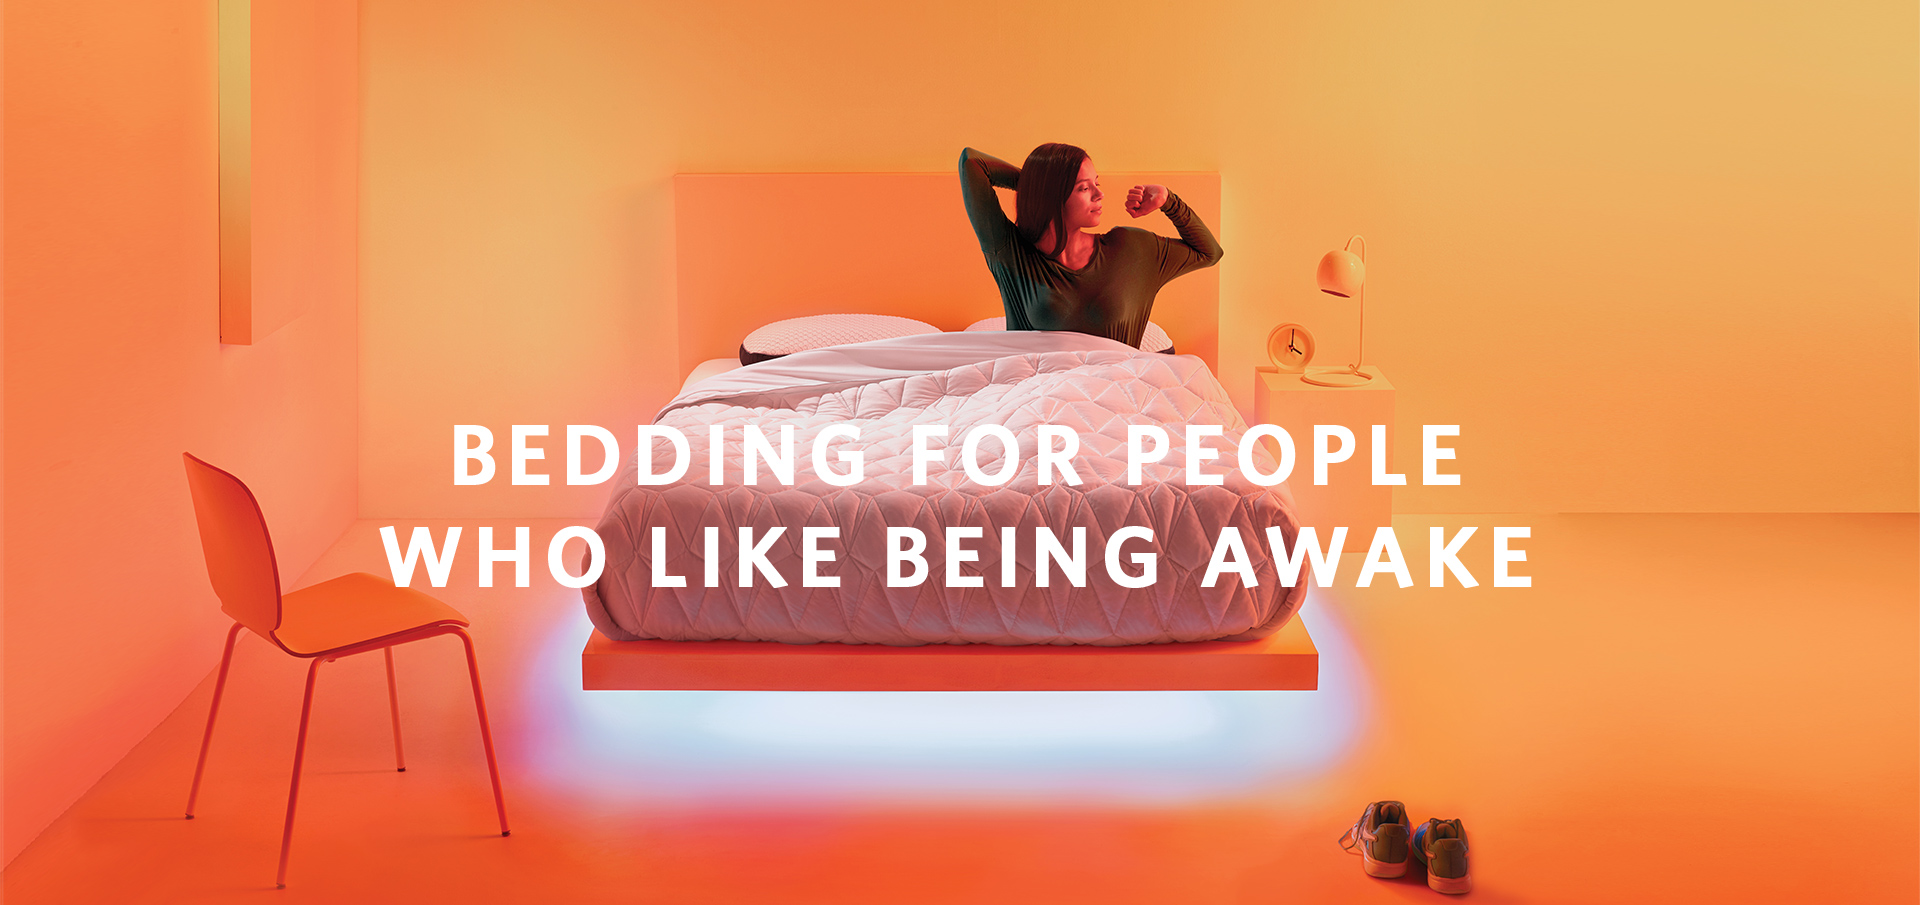 Bedding for people who like being awake